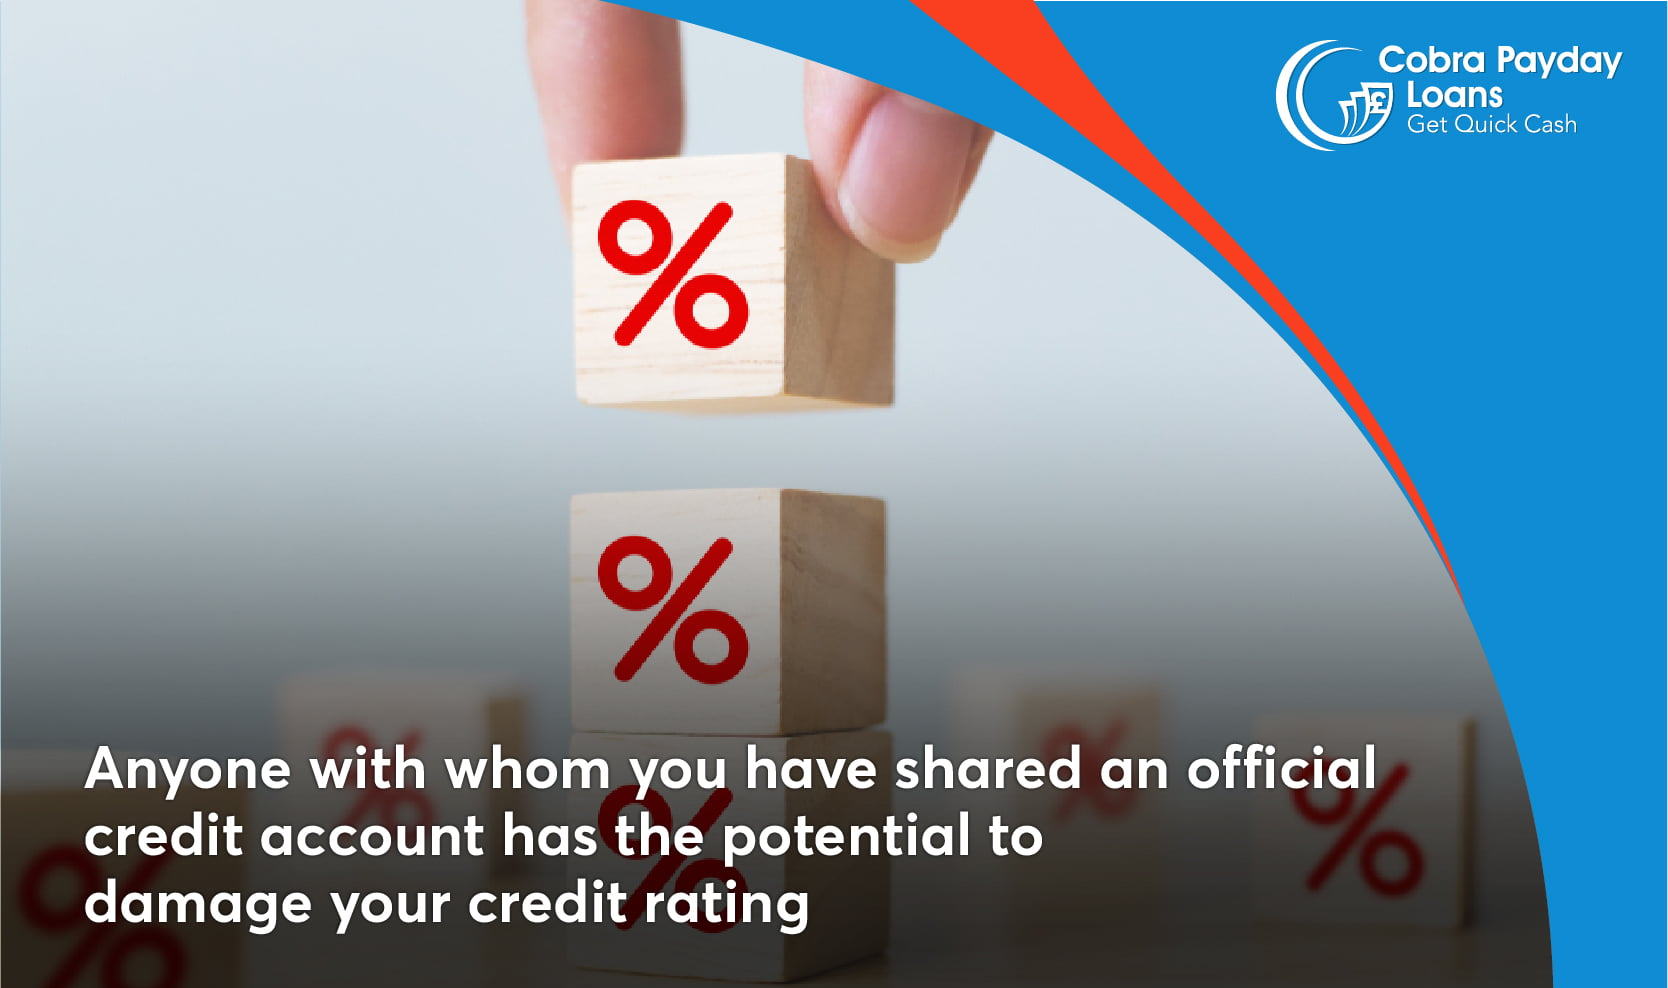 Anyone with whom you have shared an official credit account has the potential to damage your credit rating